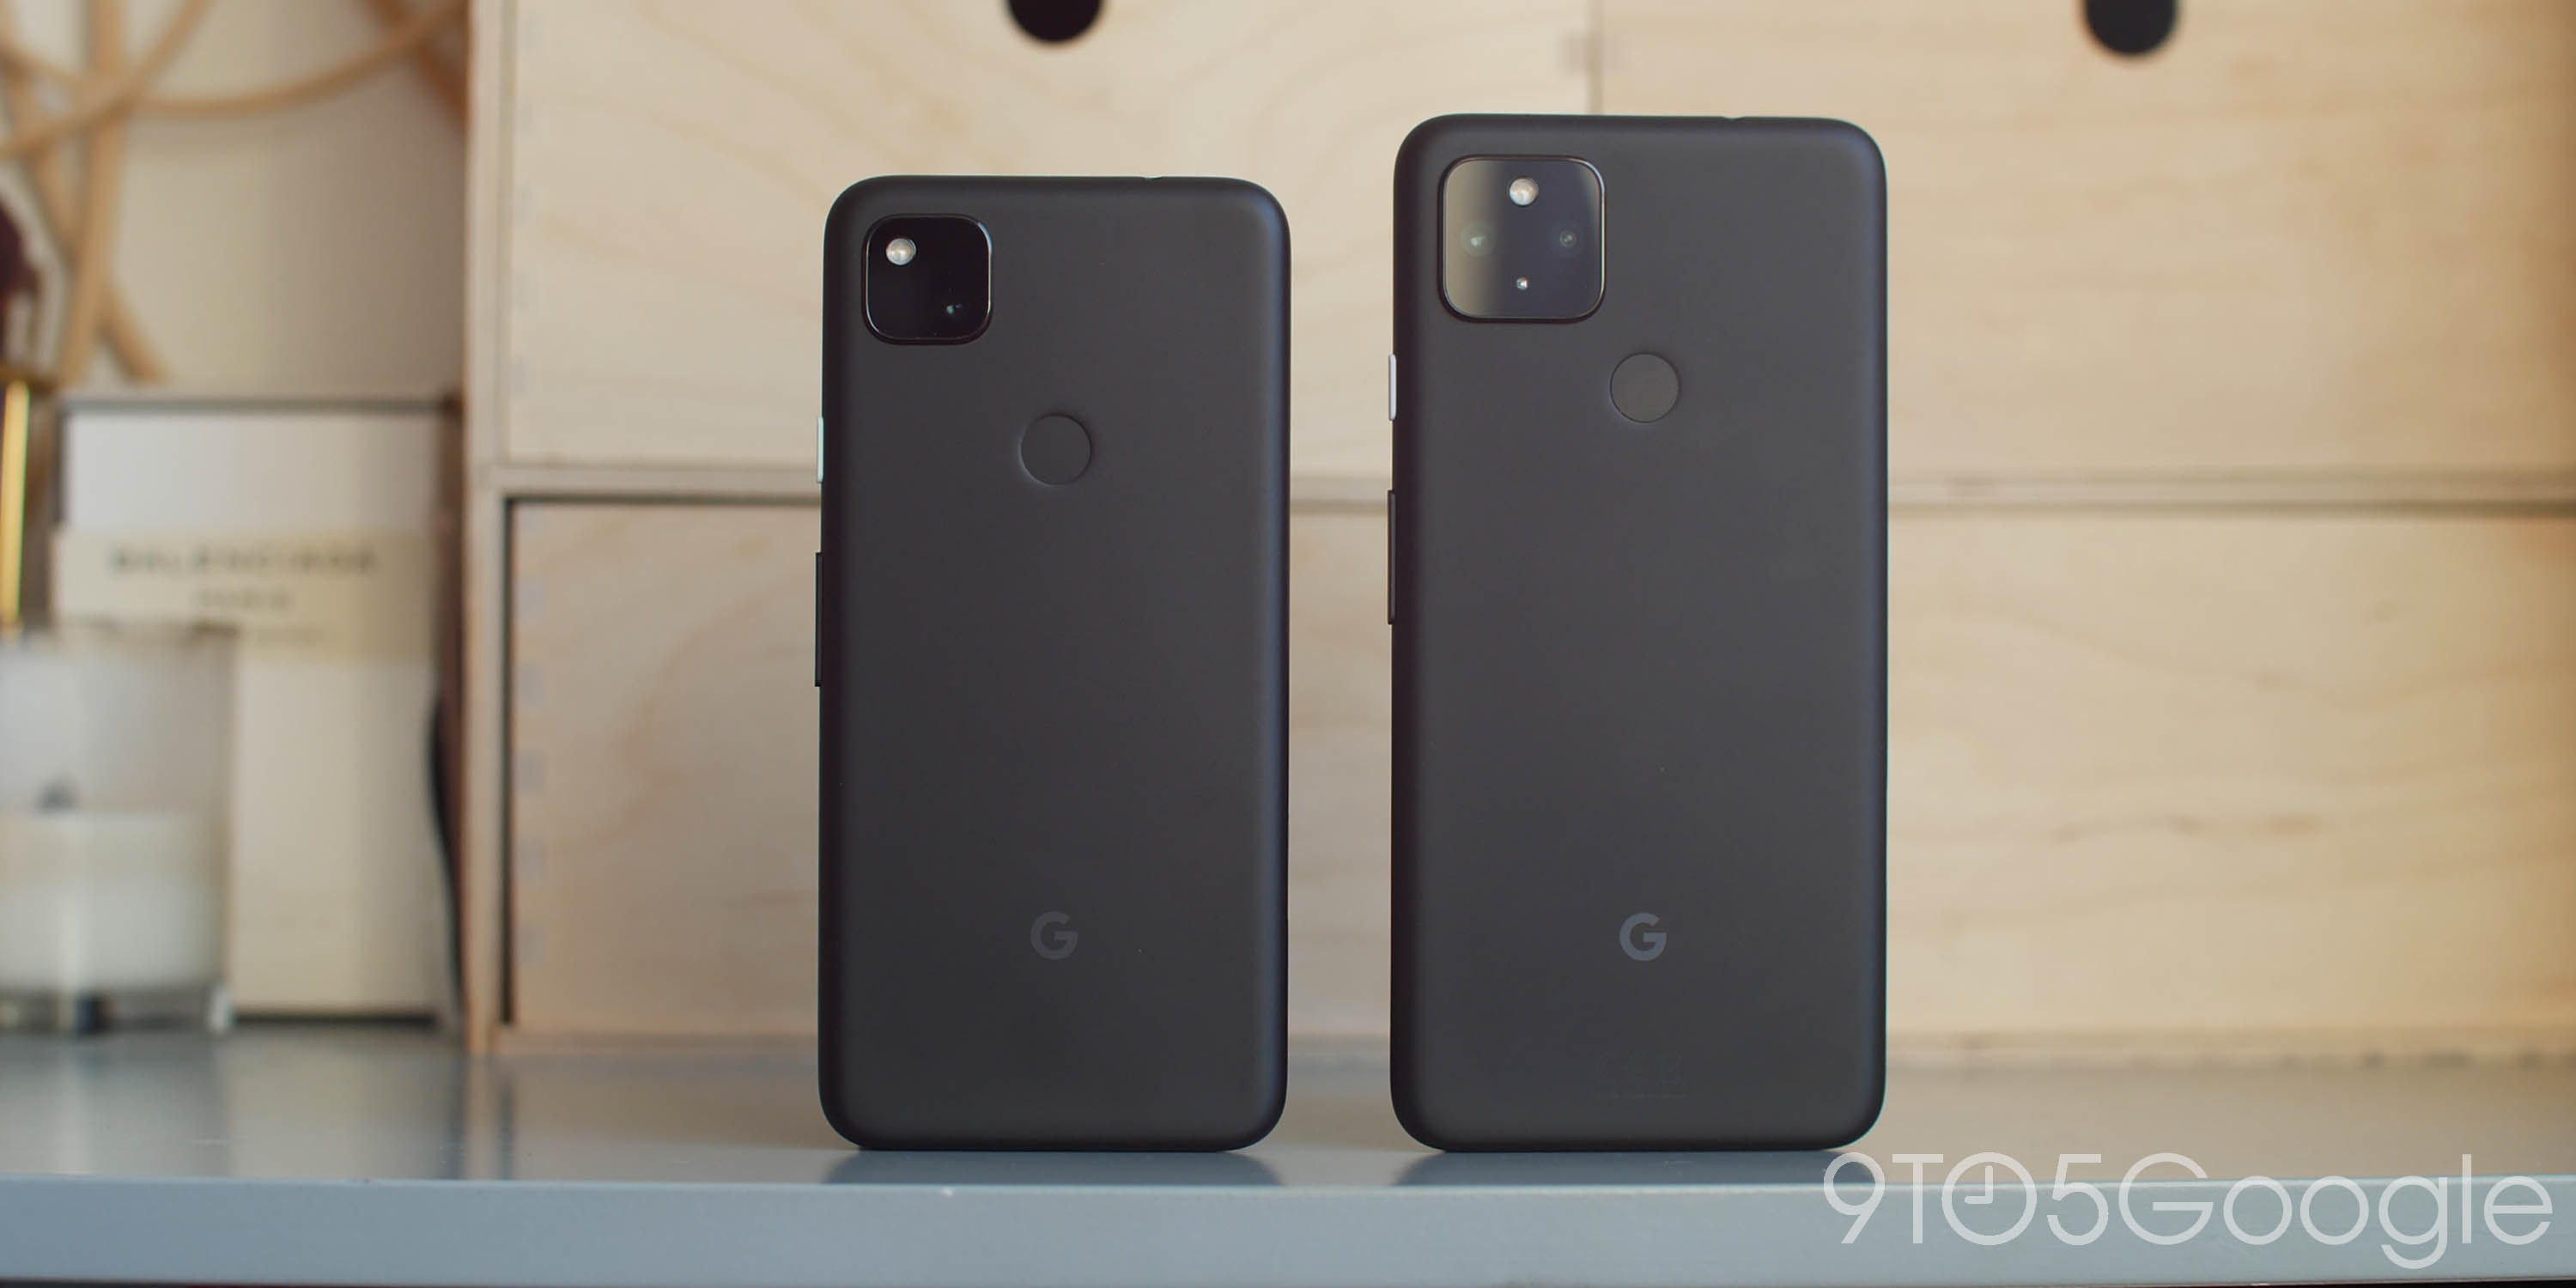 Pixel 4a vs. Pixel 4a 5G: Which is the right affordable Pixel for you? [Video] - 9to5Google